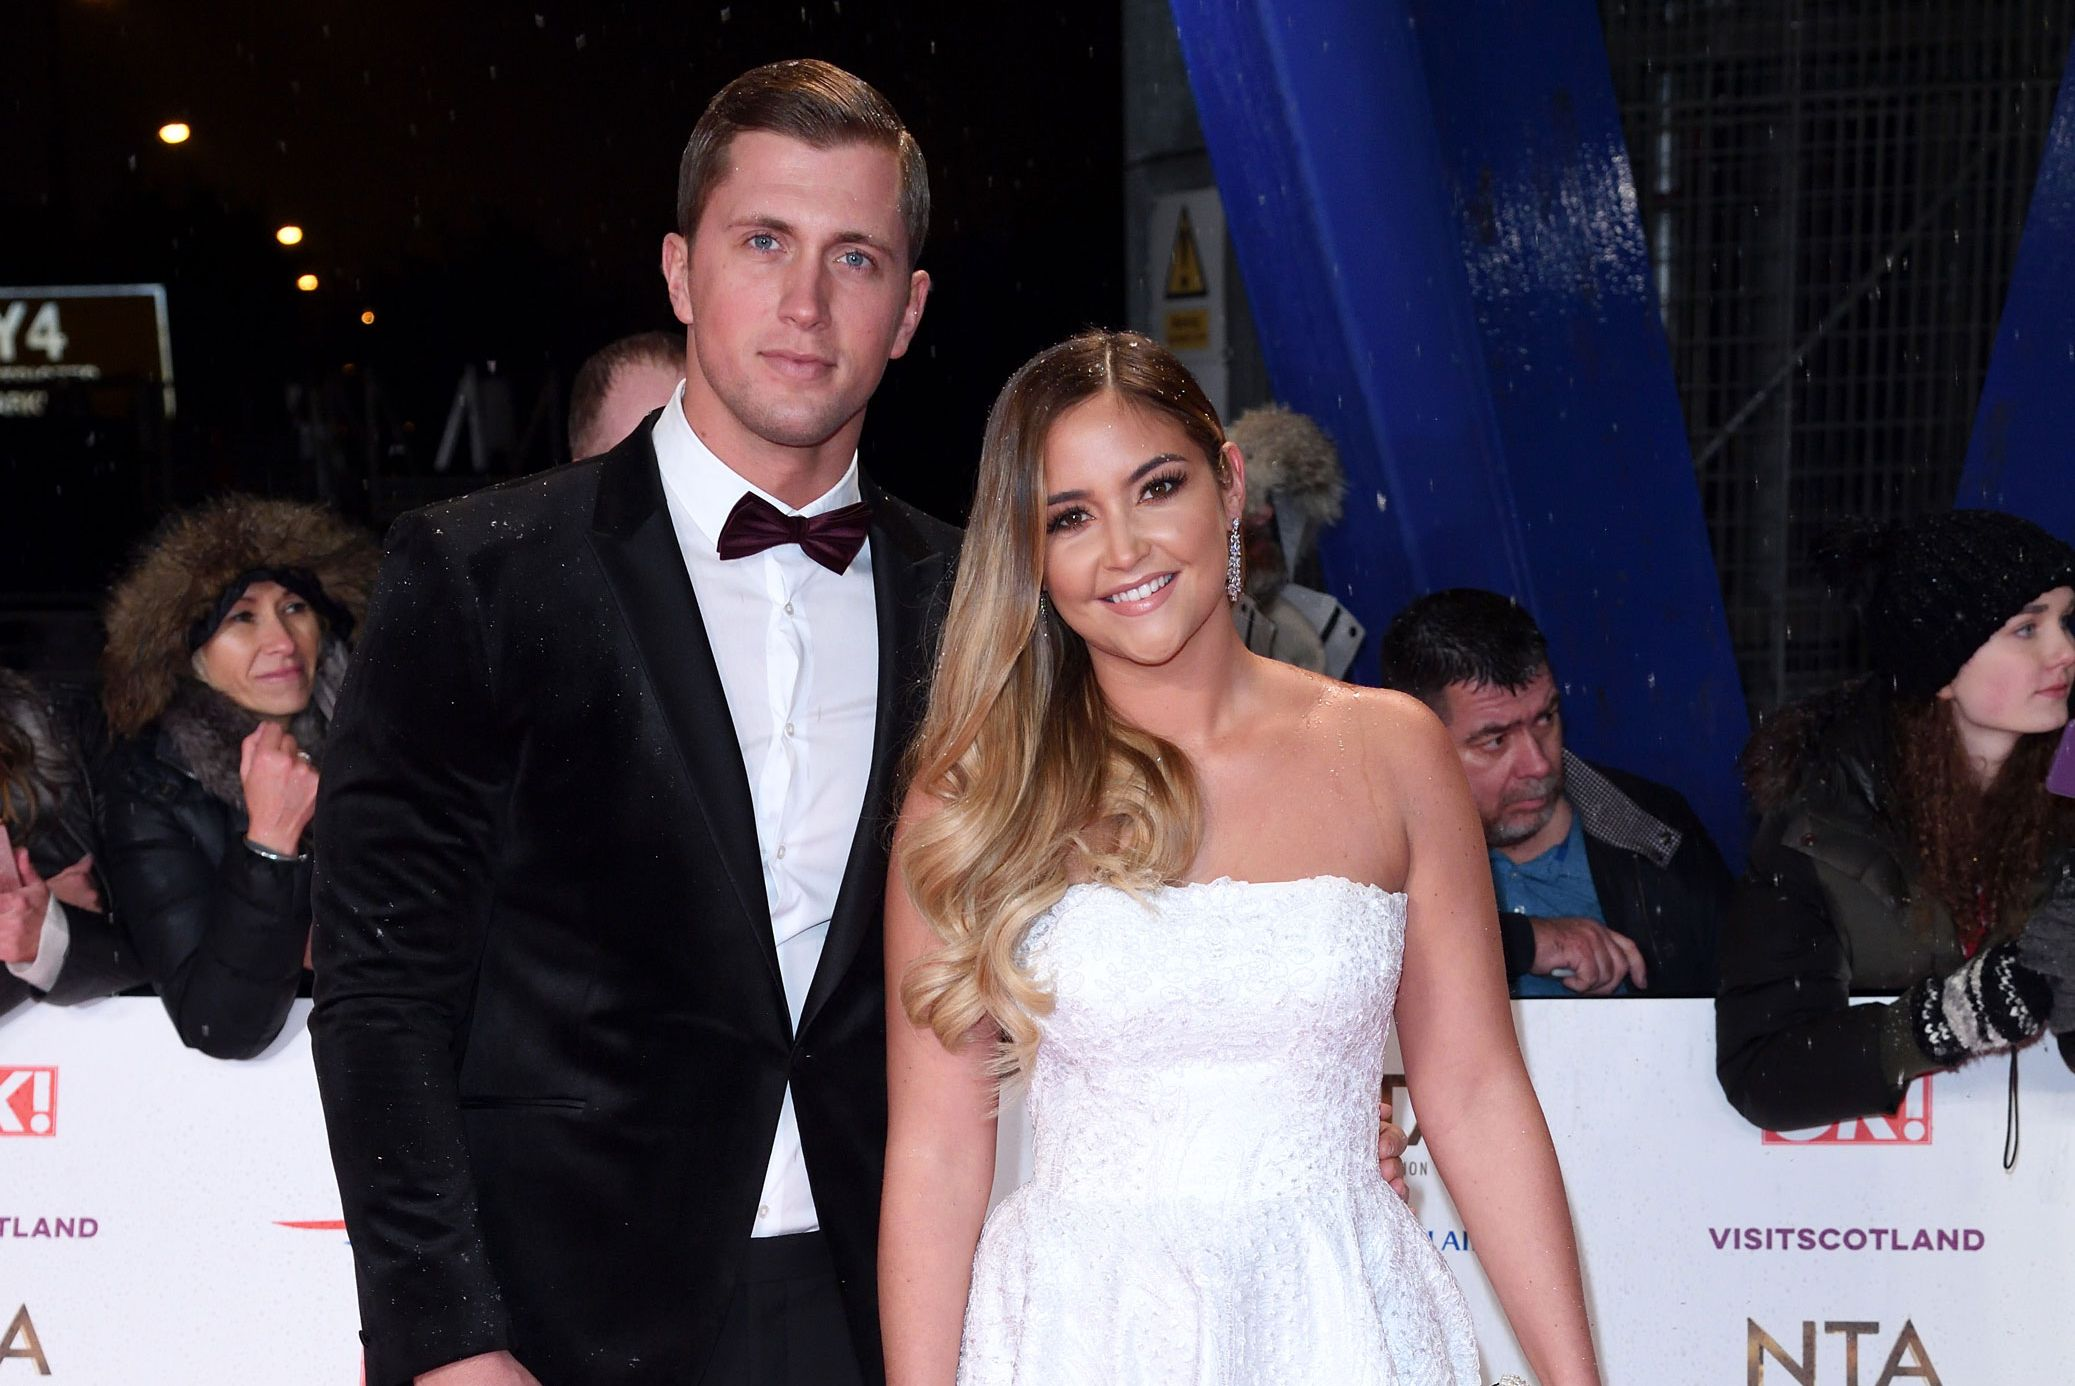 Jacqueline Jossa's husband Dan Osborne denies kissing Love Island star behind her back